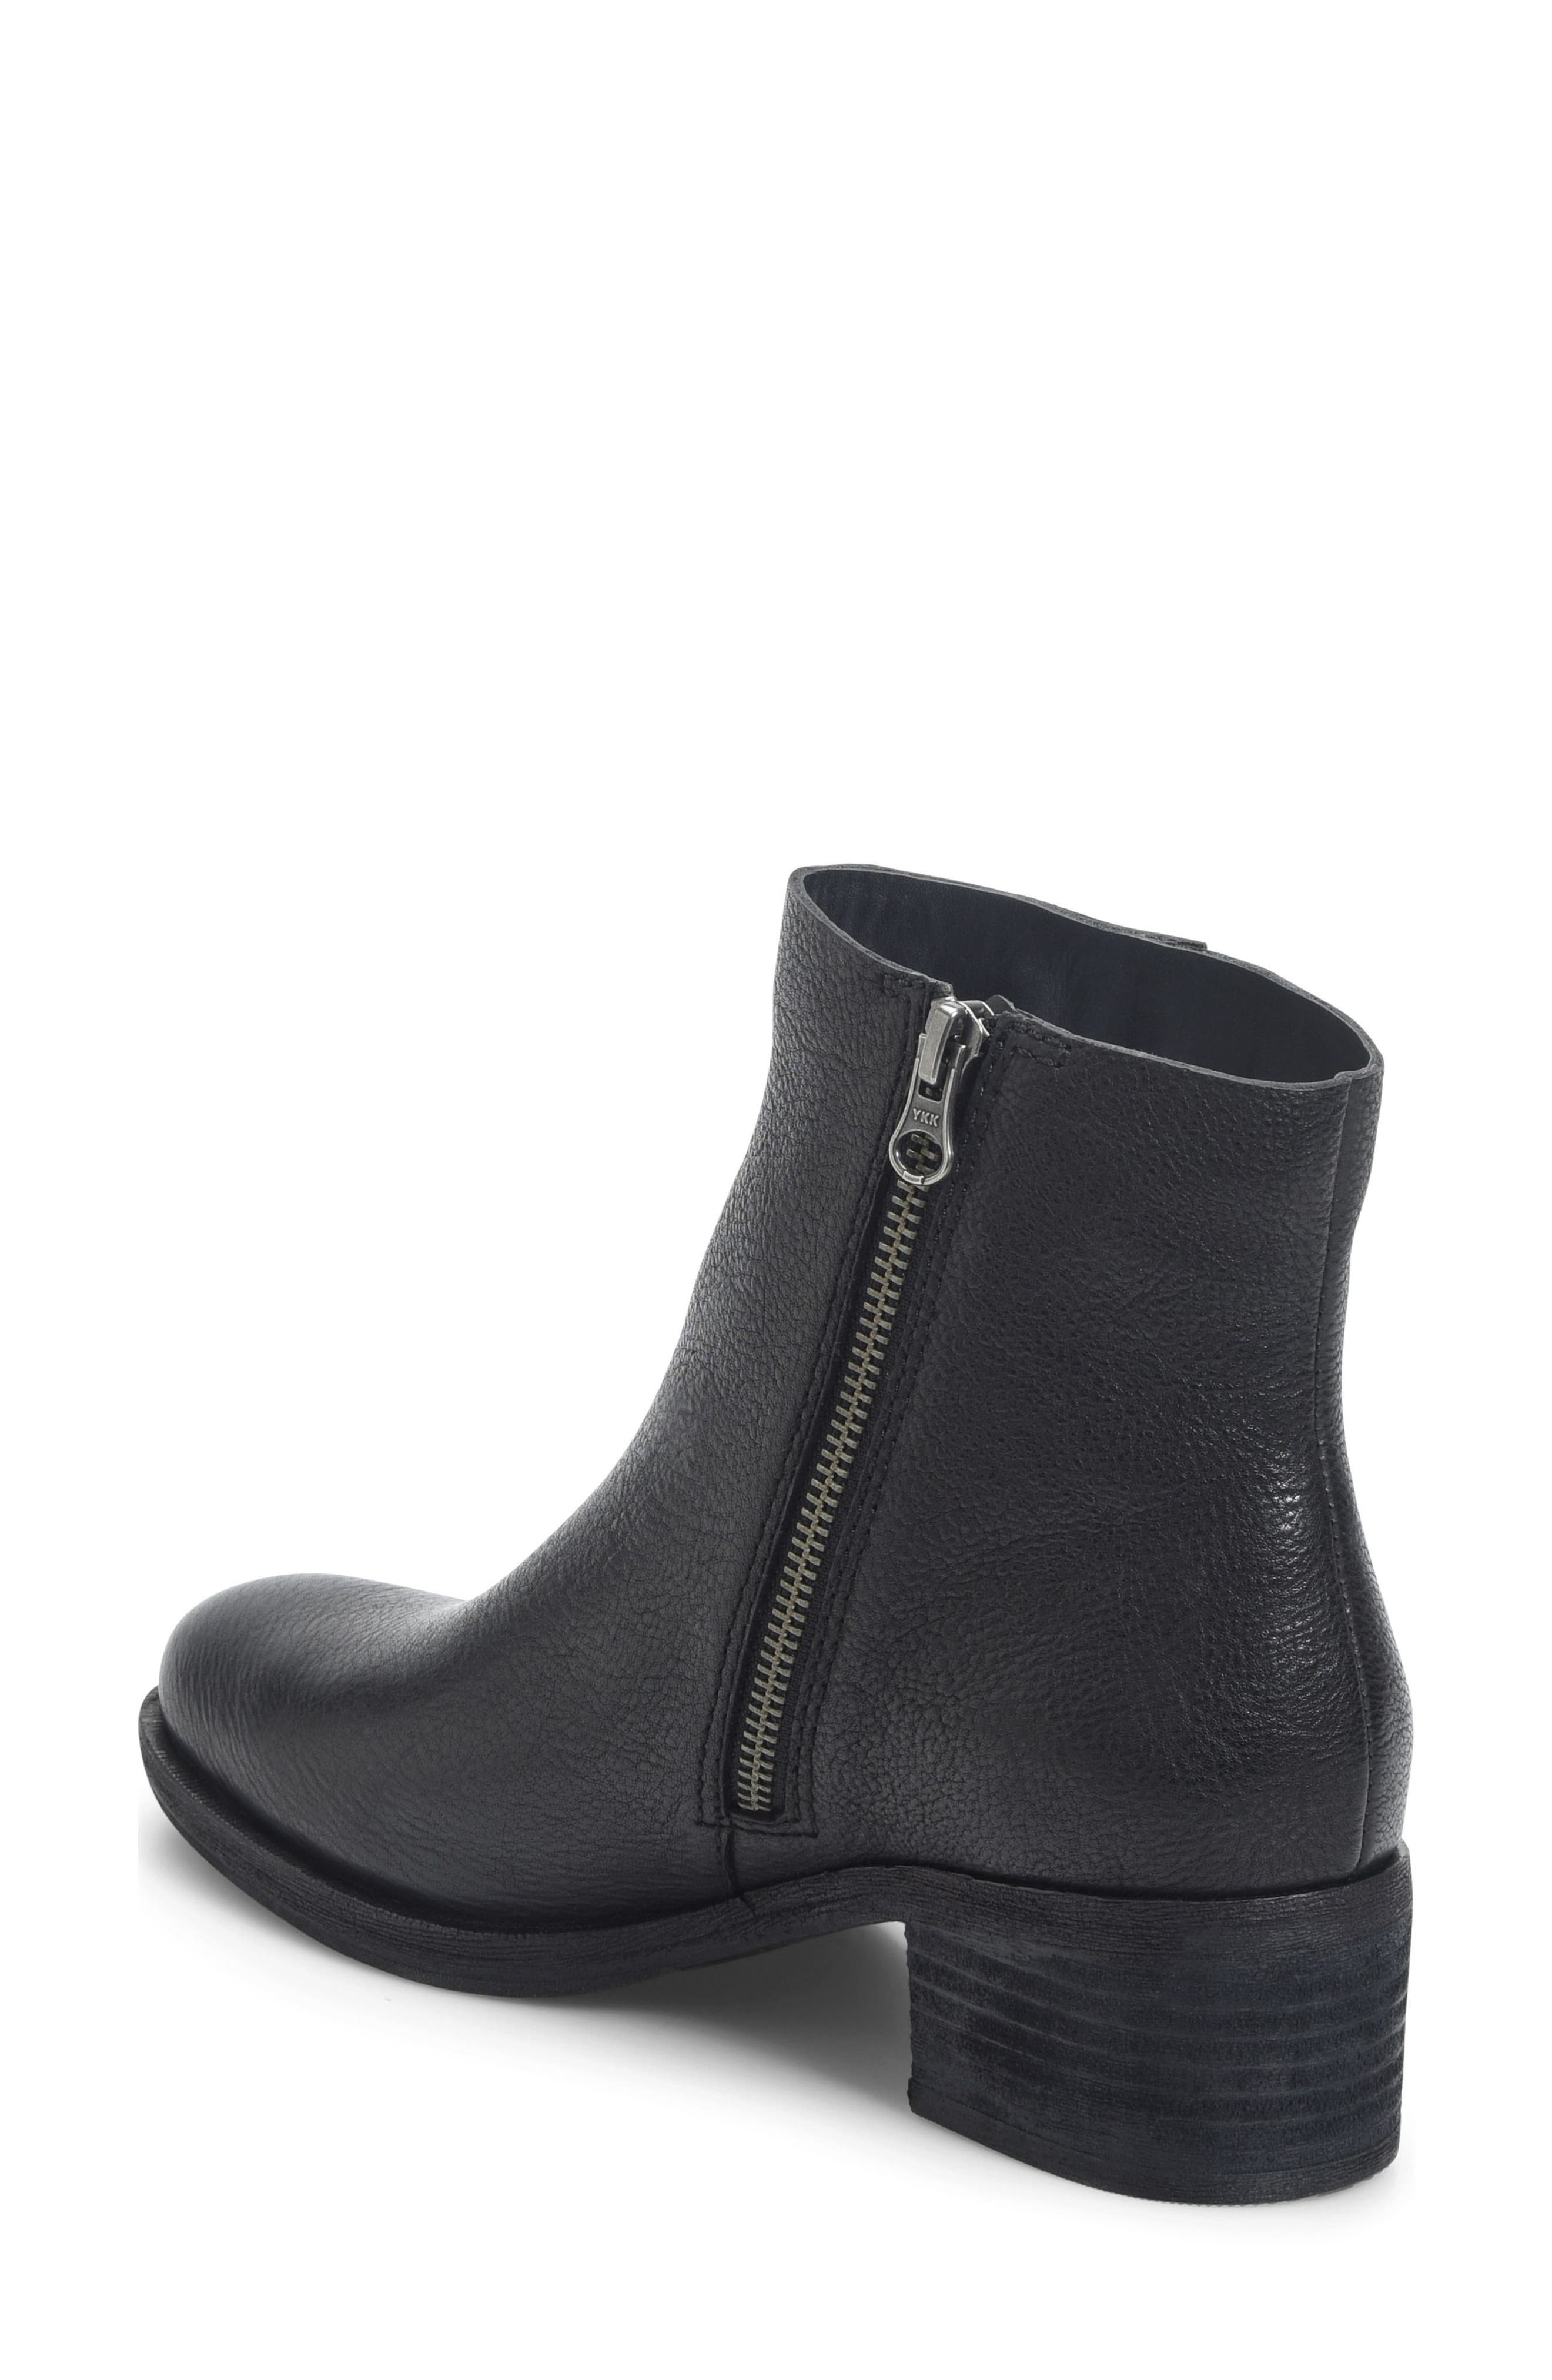 Mayten Bootie,                             Alternate thumbnail 2, color,                             Black Leather